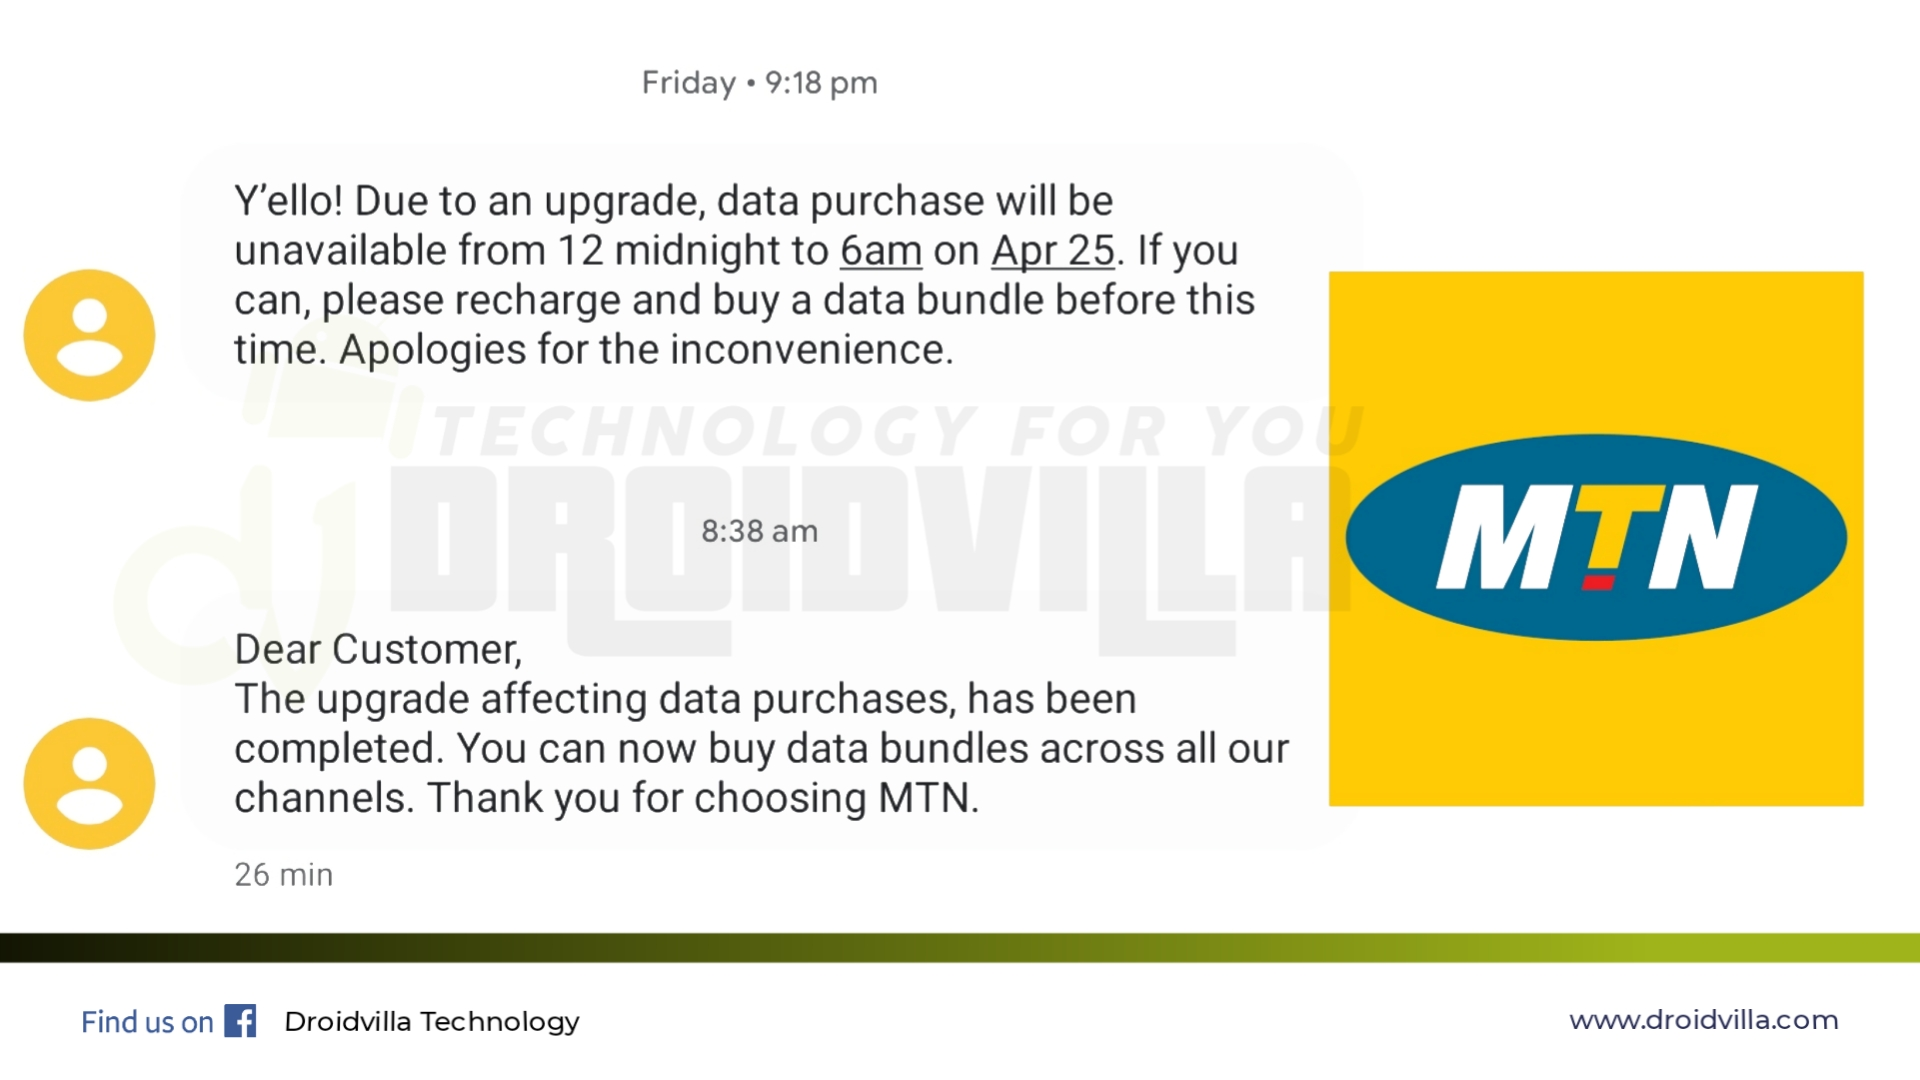 Mtn service upgrade completed: Customers can now recharge and buy data